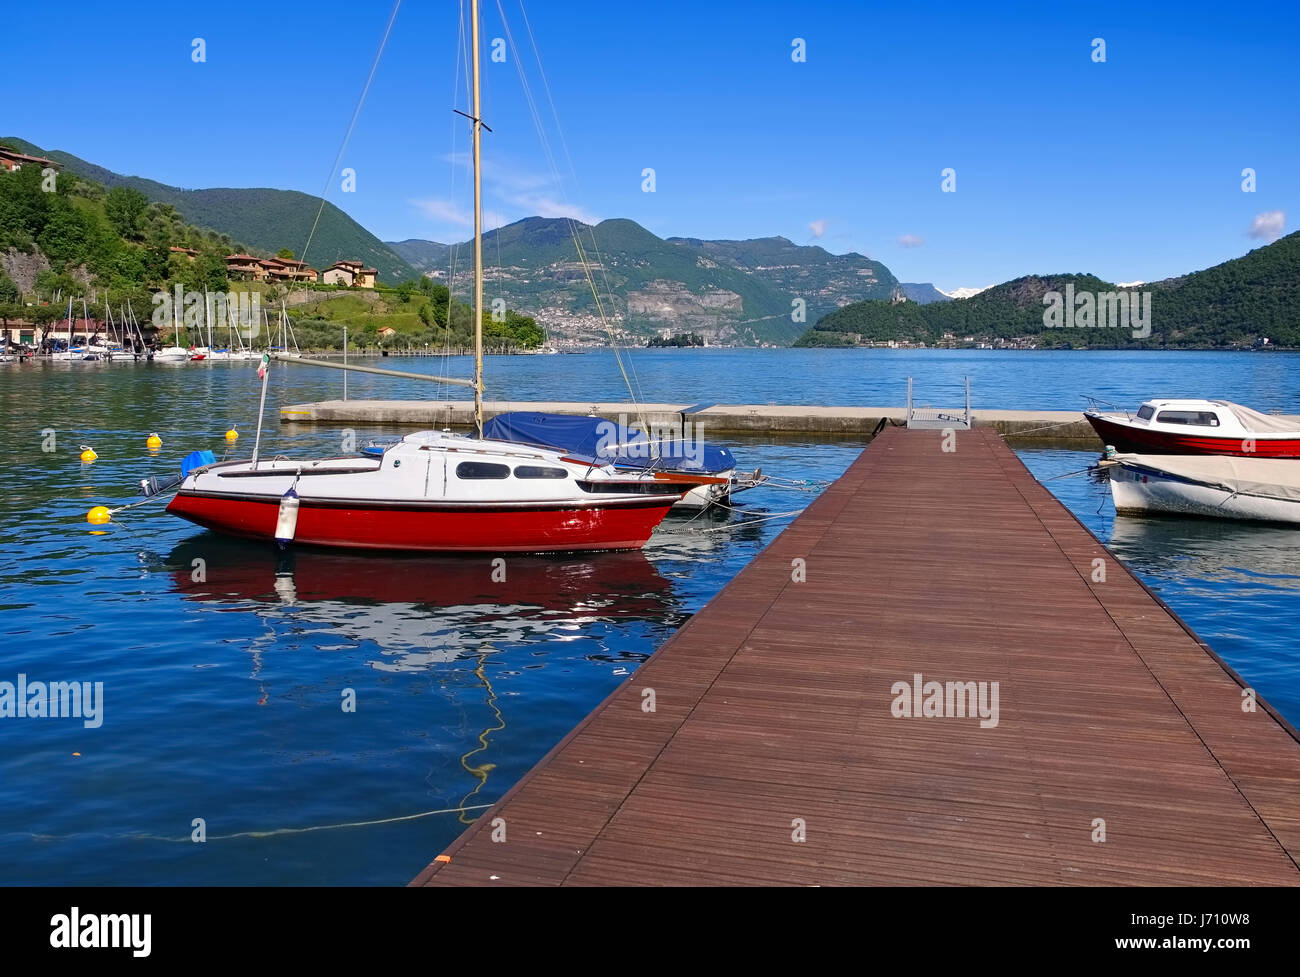 Iseo lake Marina in Alps, Lombardy in northern Italy - Stock Image